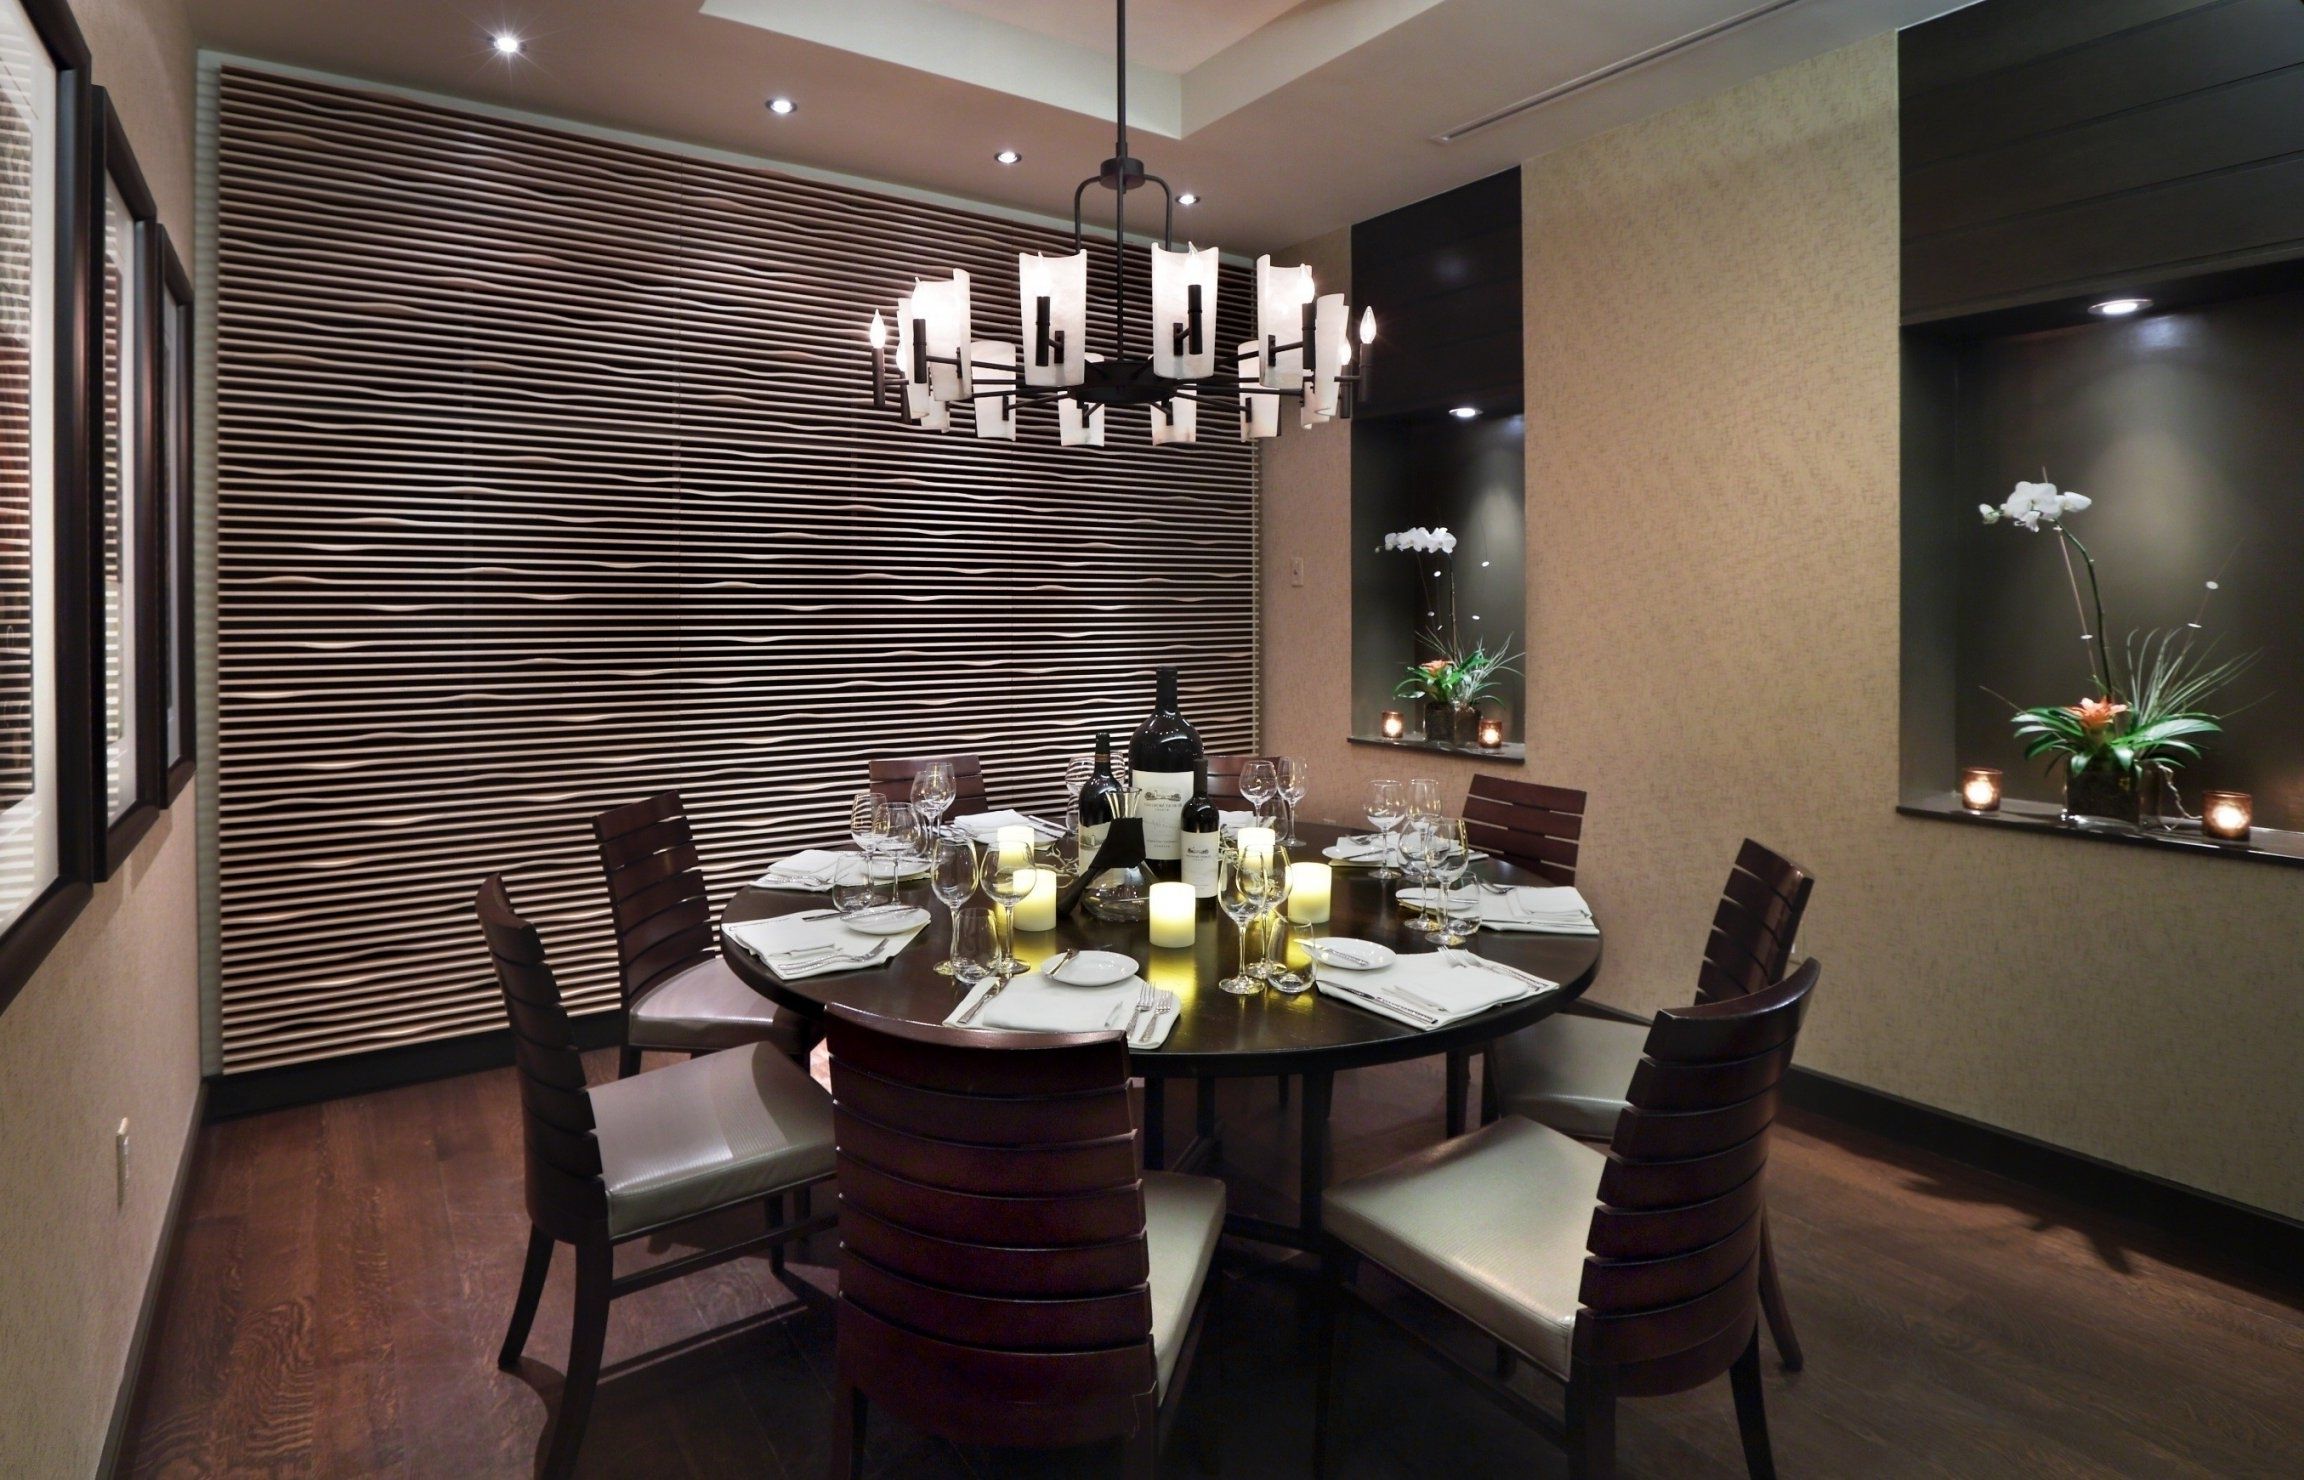 Current Dining Room Chandeliers For Low Ceilings (View 6 of 20)